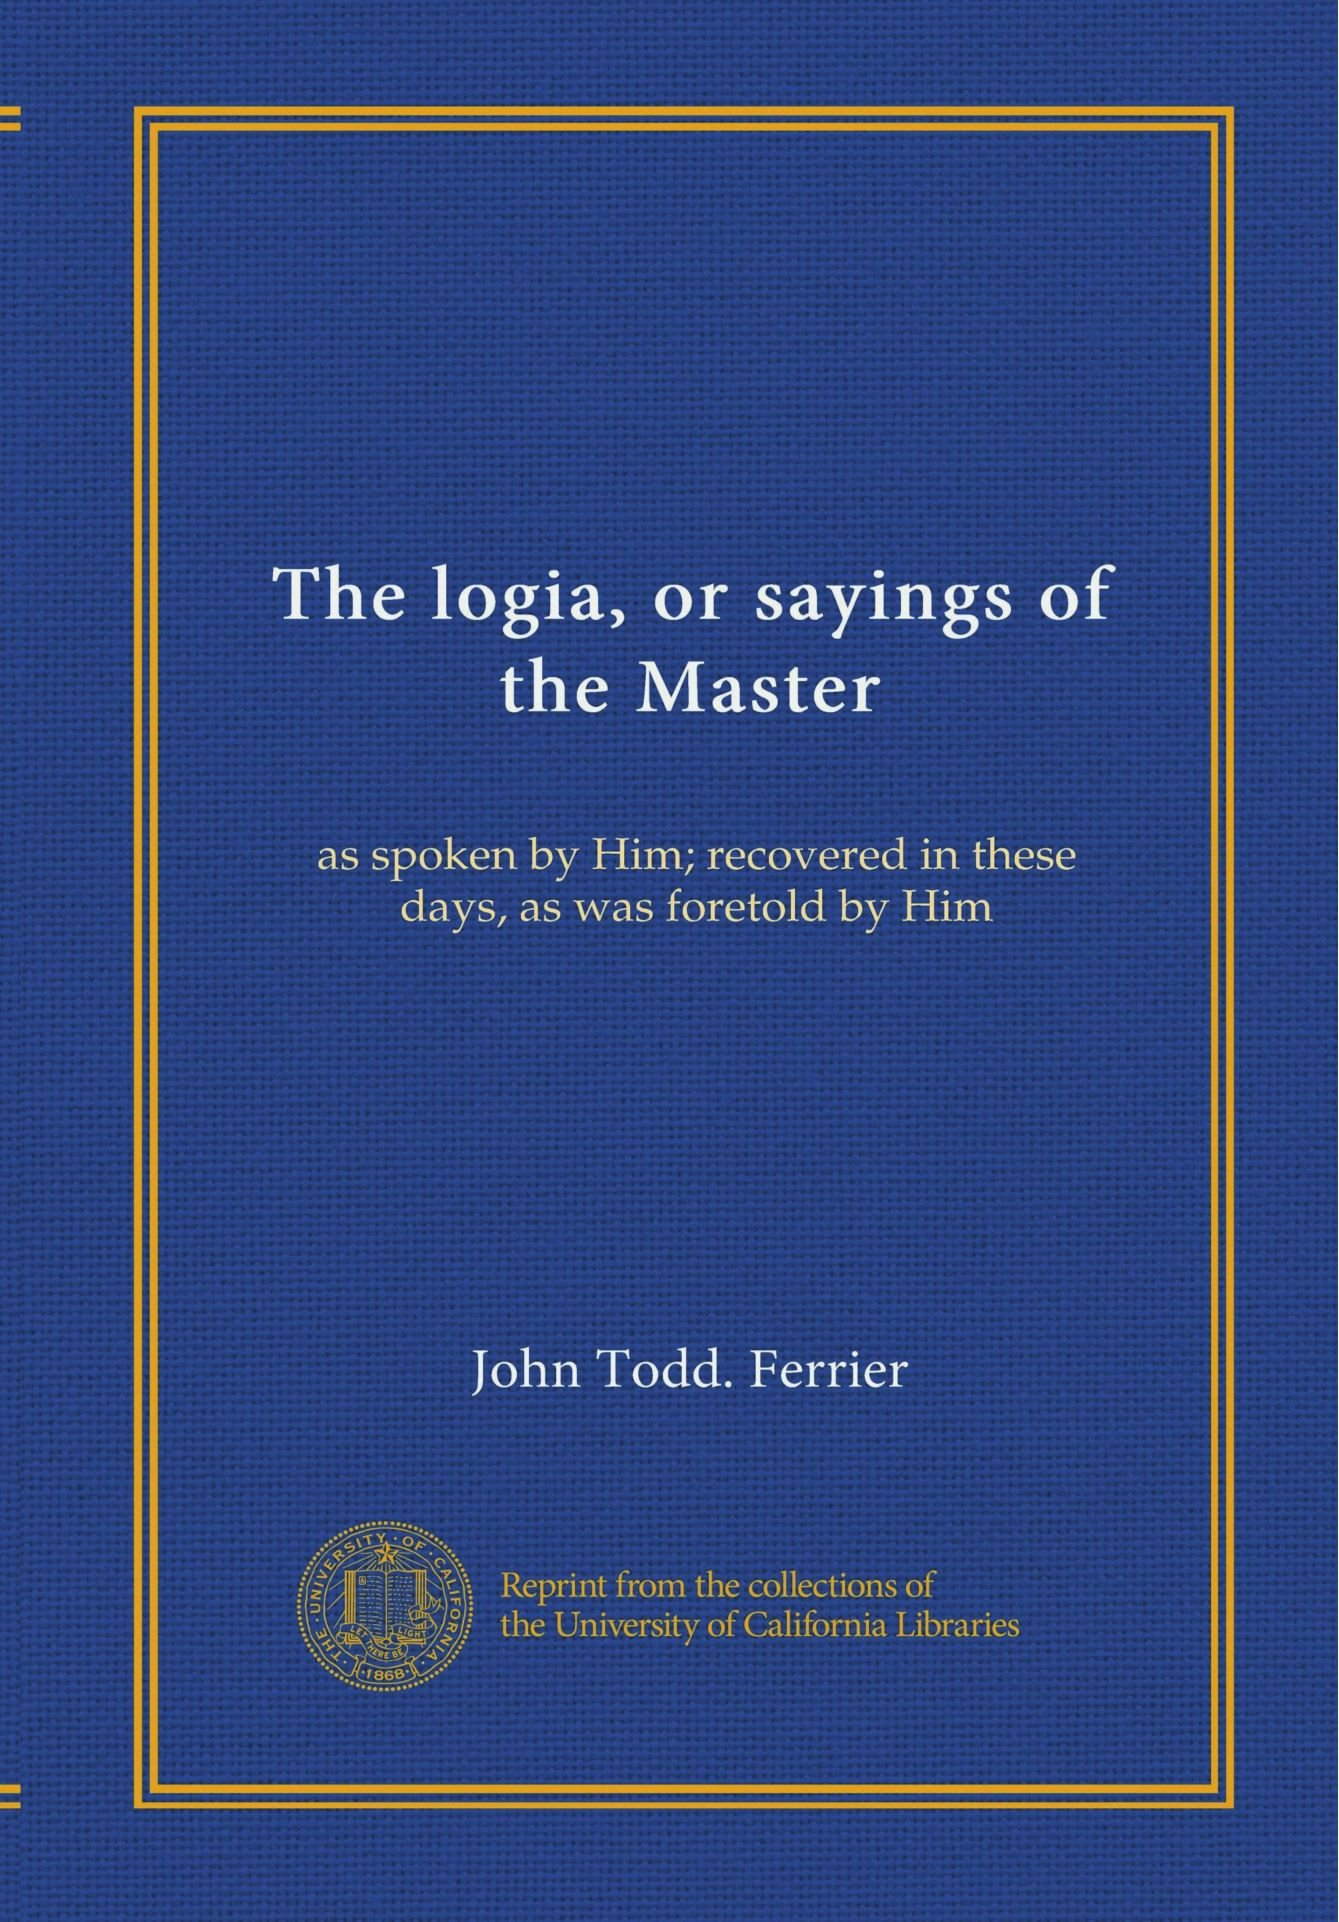 Download The logia, or sayings of the Master: as spoken by Him; recovered in these days, as was foretold by Him PDF